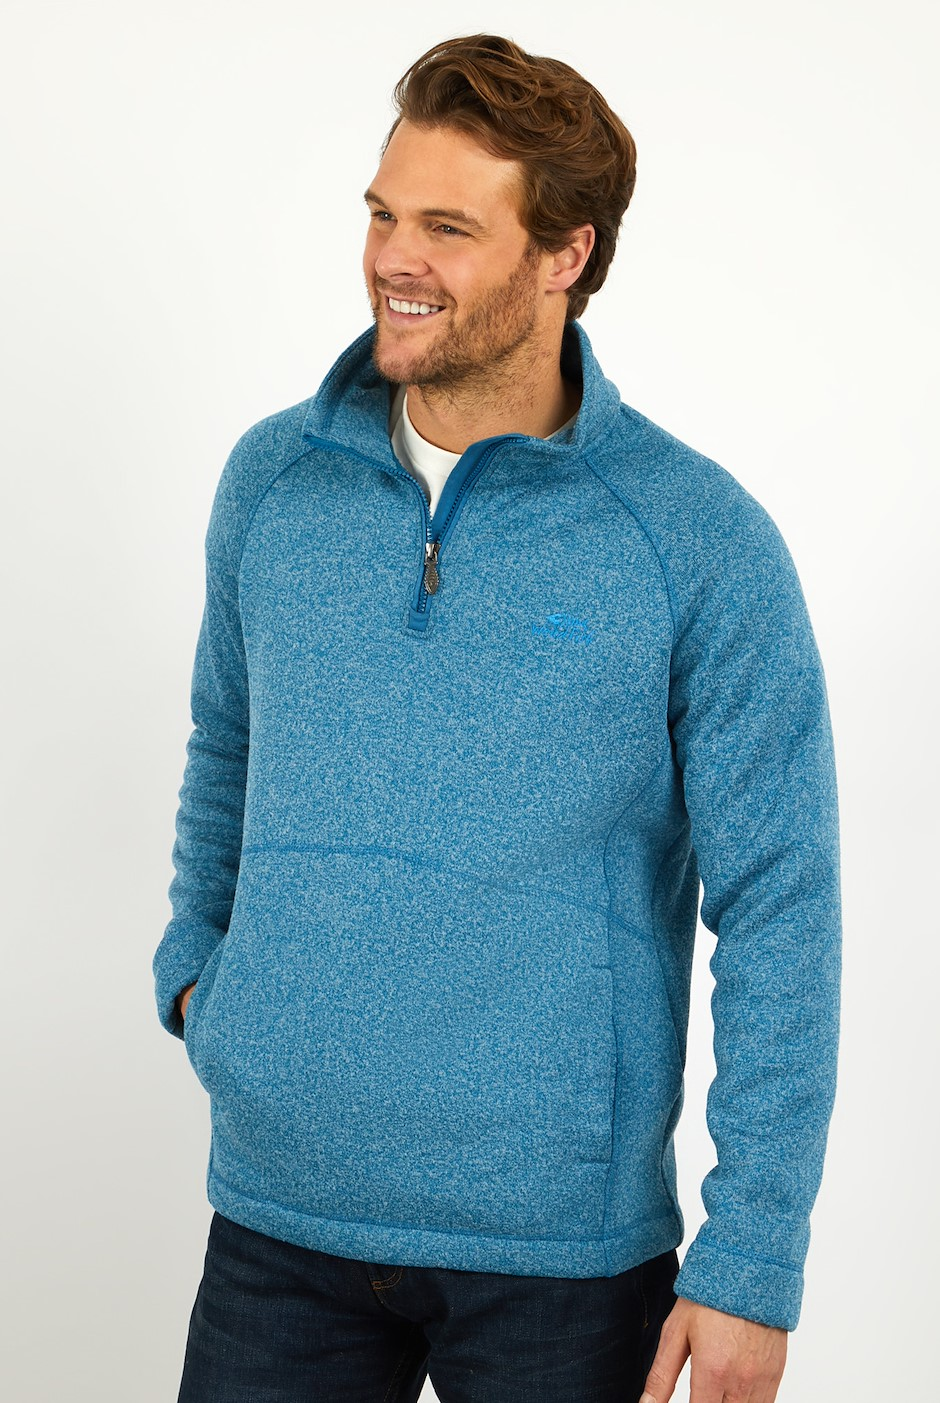 Mercada 1/4 Zip Bonded Soft Knit Storm Blue